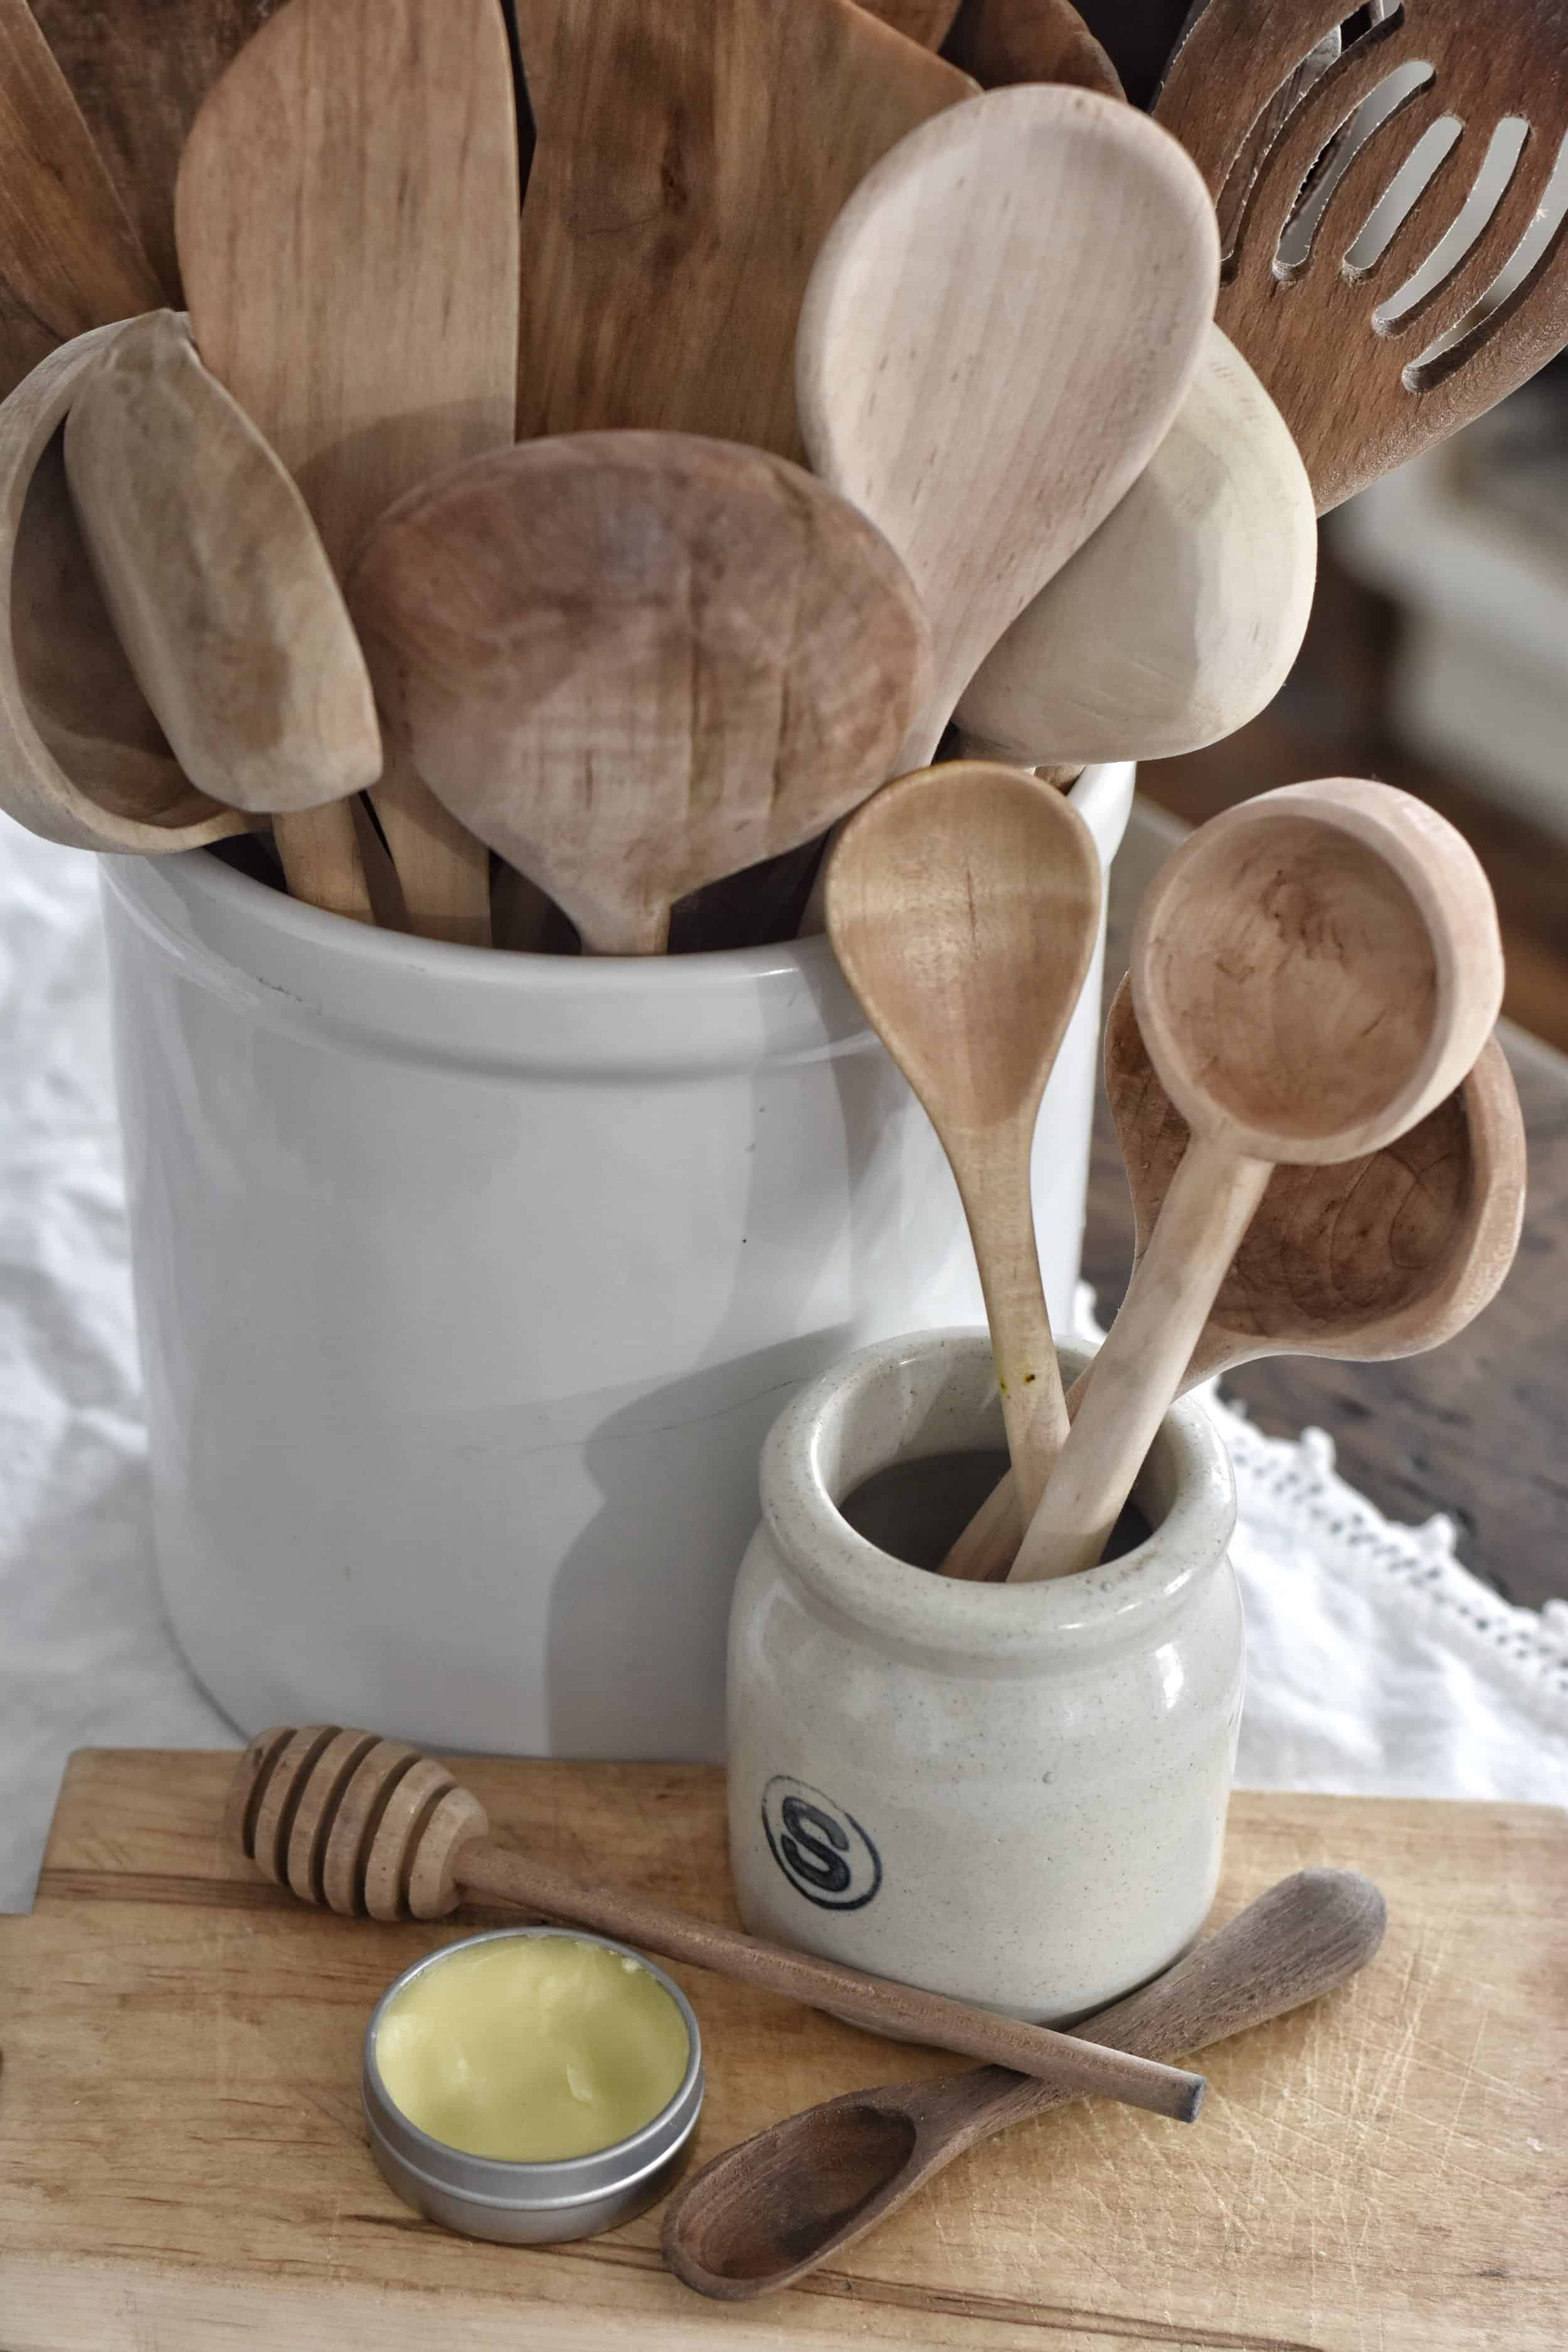 How to Treat Wooden Spoons